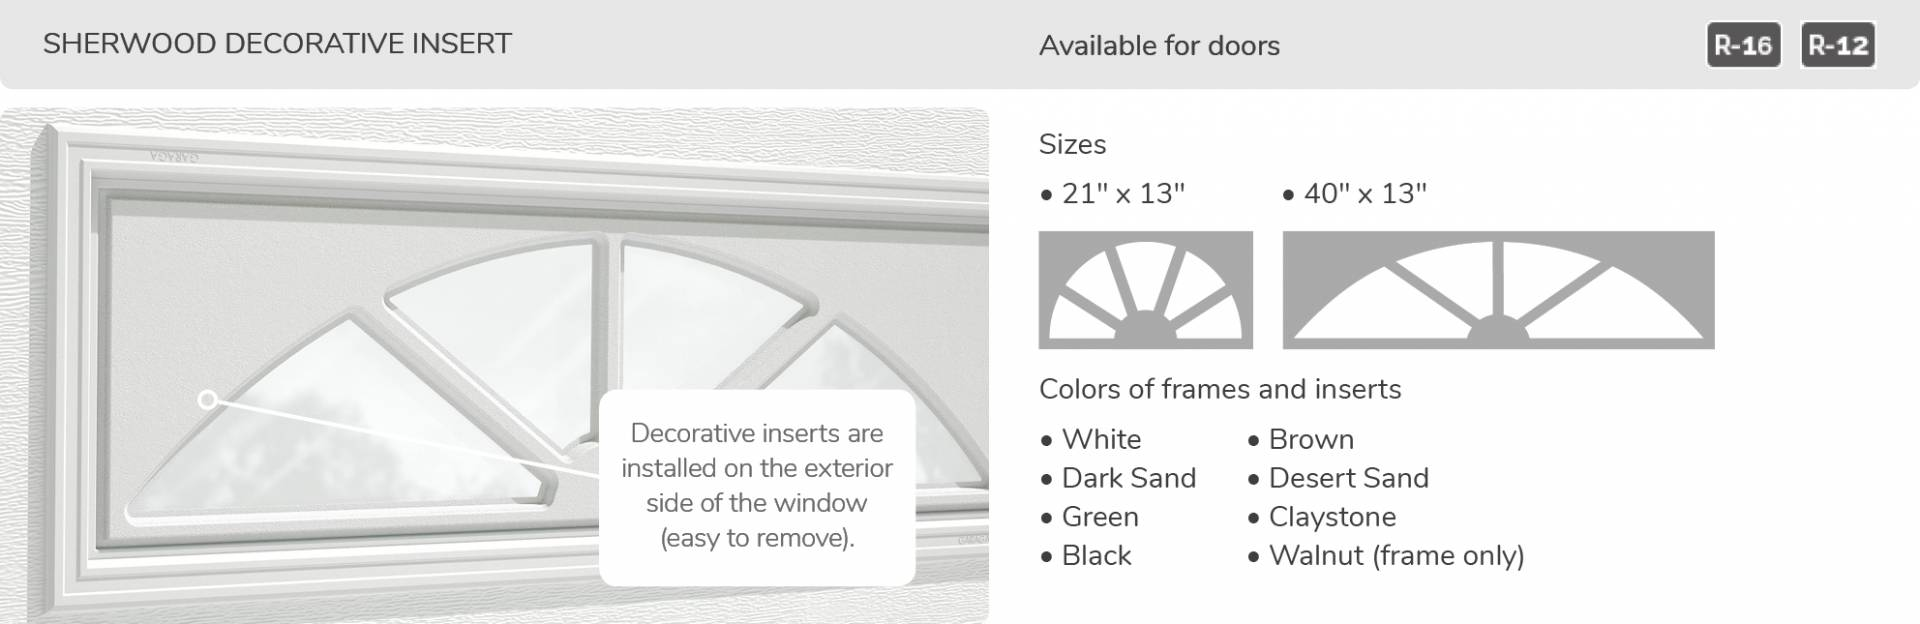 Sherwood Decorative Insert, 21' x 13' and 40' x 13', available for door R-16 and R-12